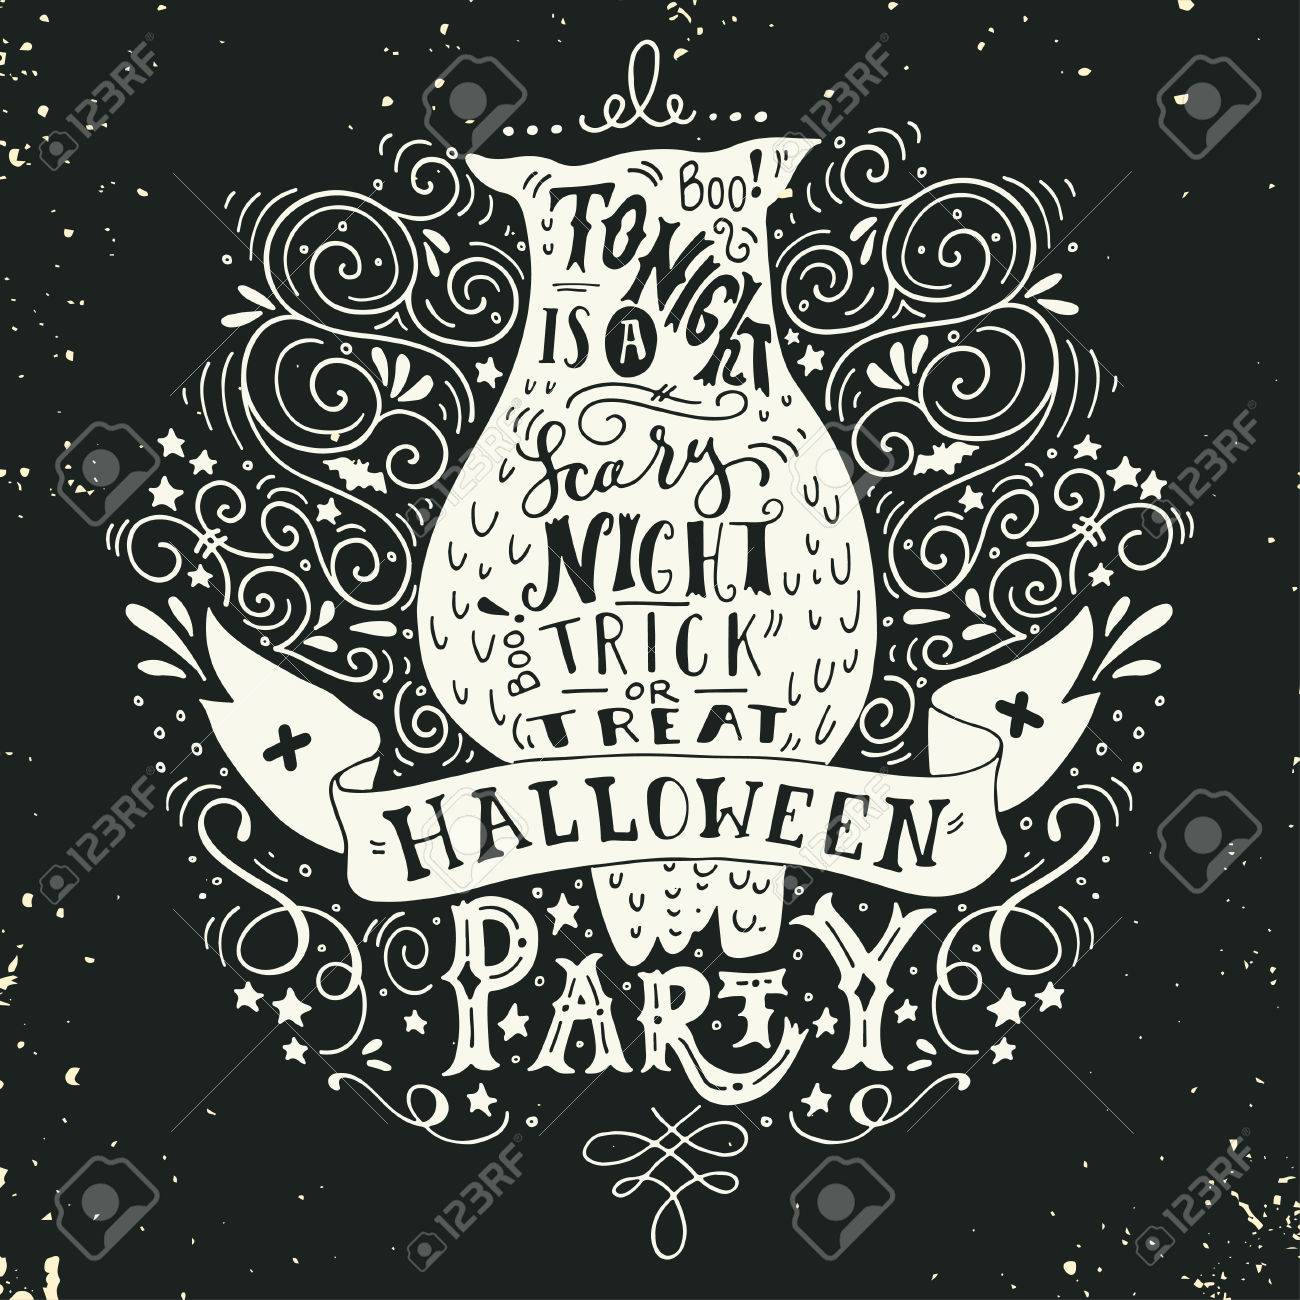 halloween party poster with an old owl, hand lettering, banner